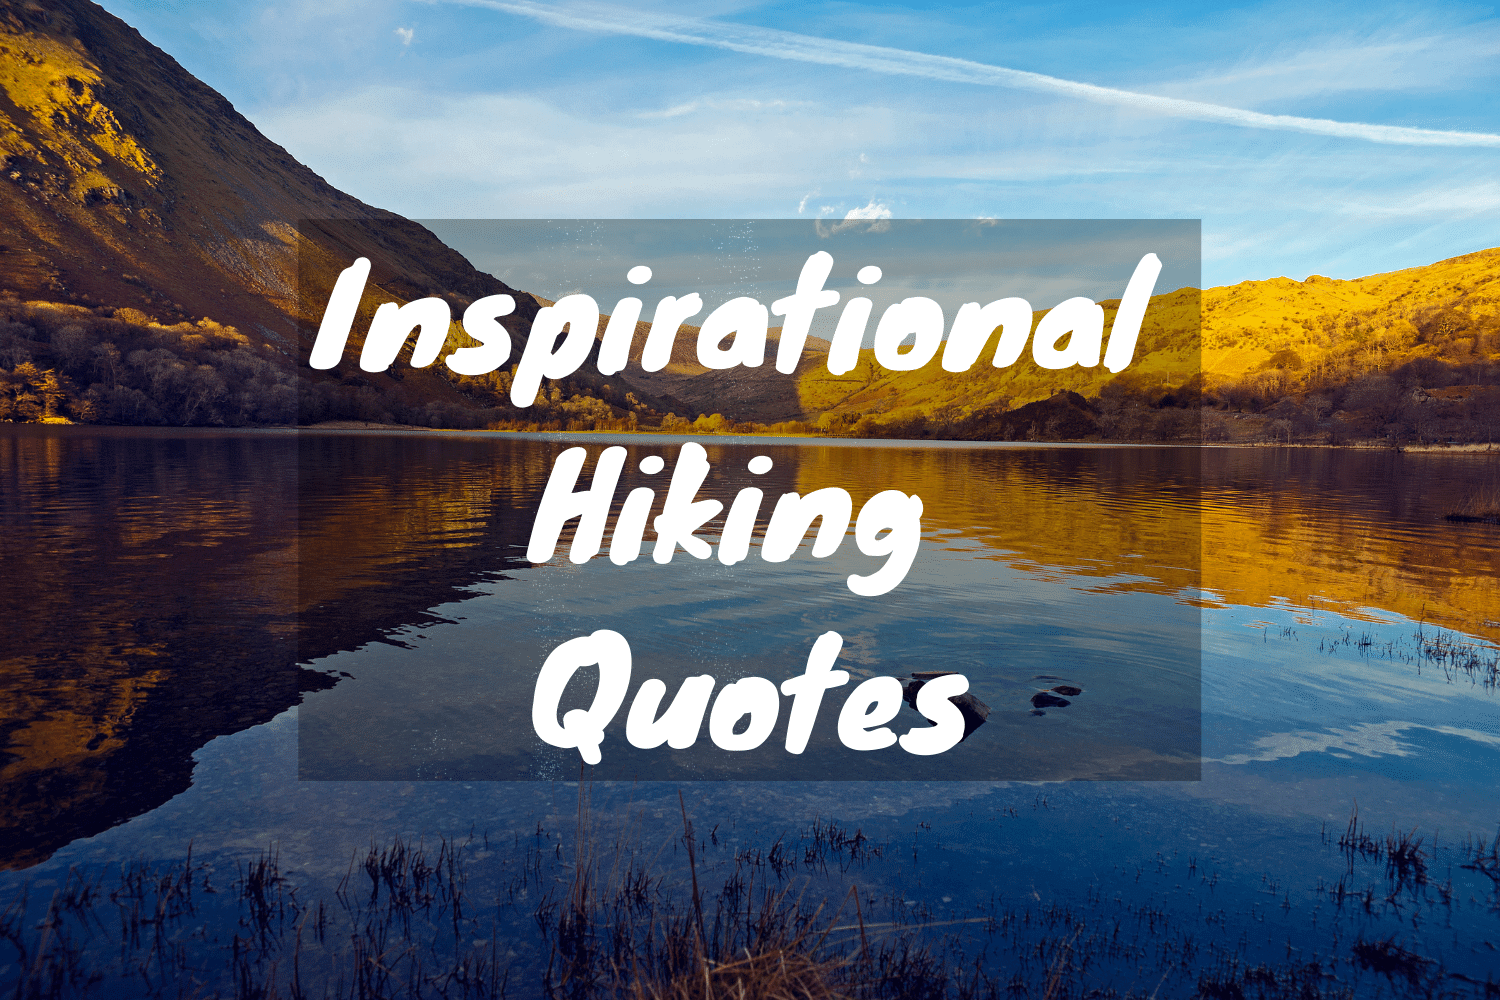 30 Inspirational Hiking Quotes to Help Fuel Your Enthusiasm